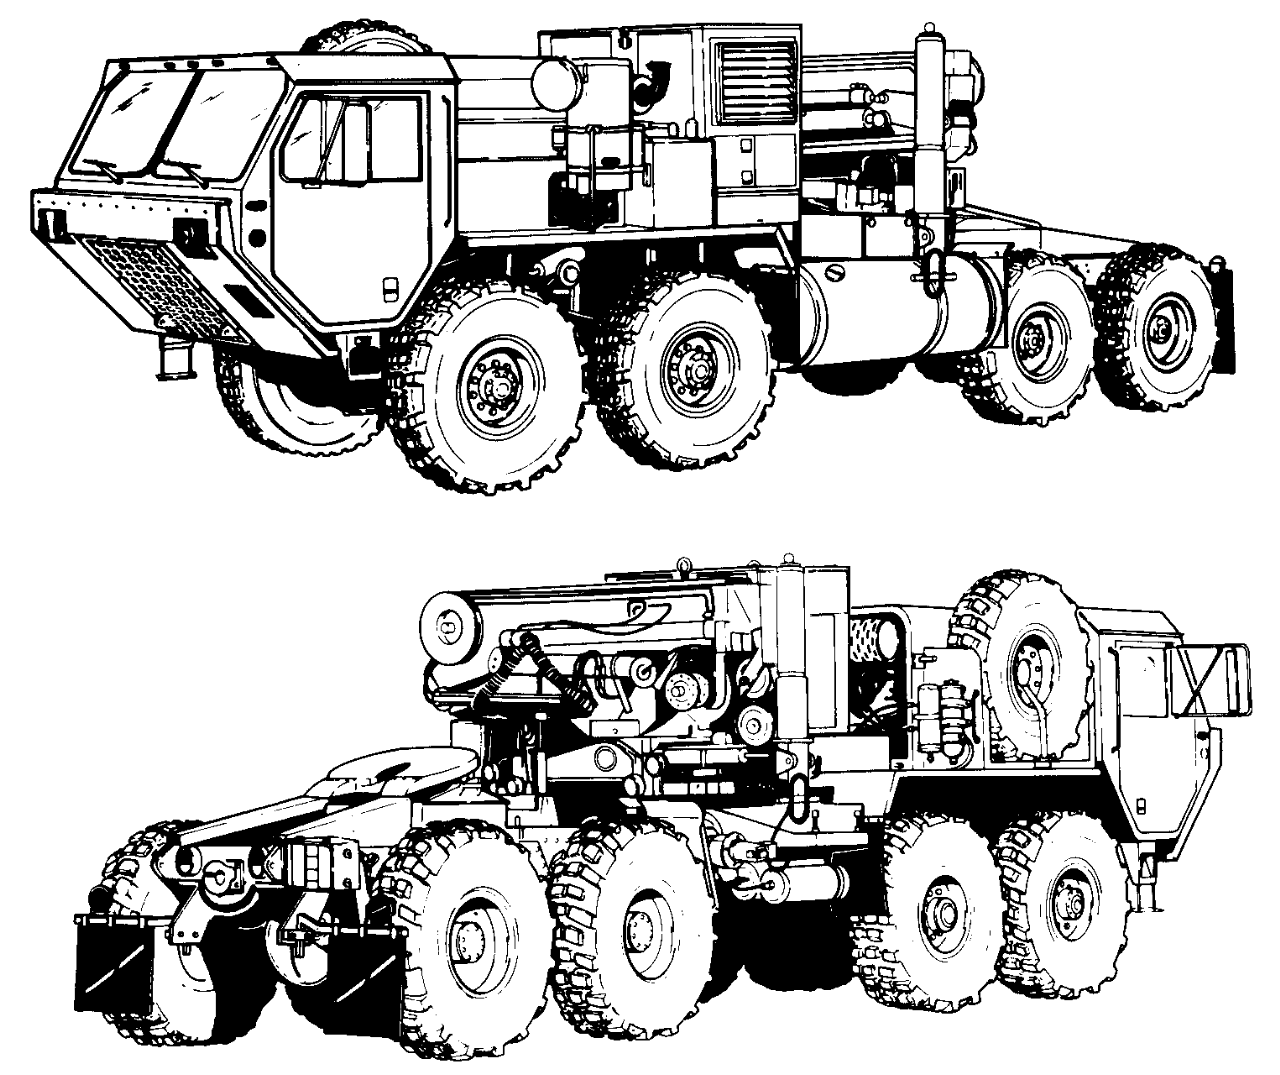 1280x1075 M977 Heavy Expanded Mobility Tactical Truck (Hemtt)